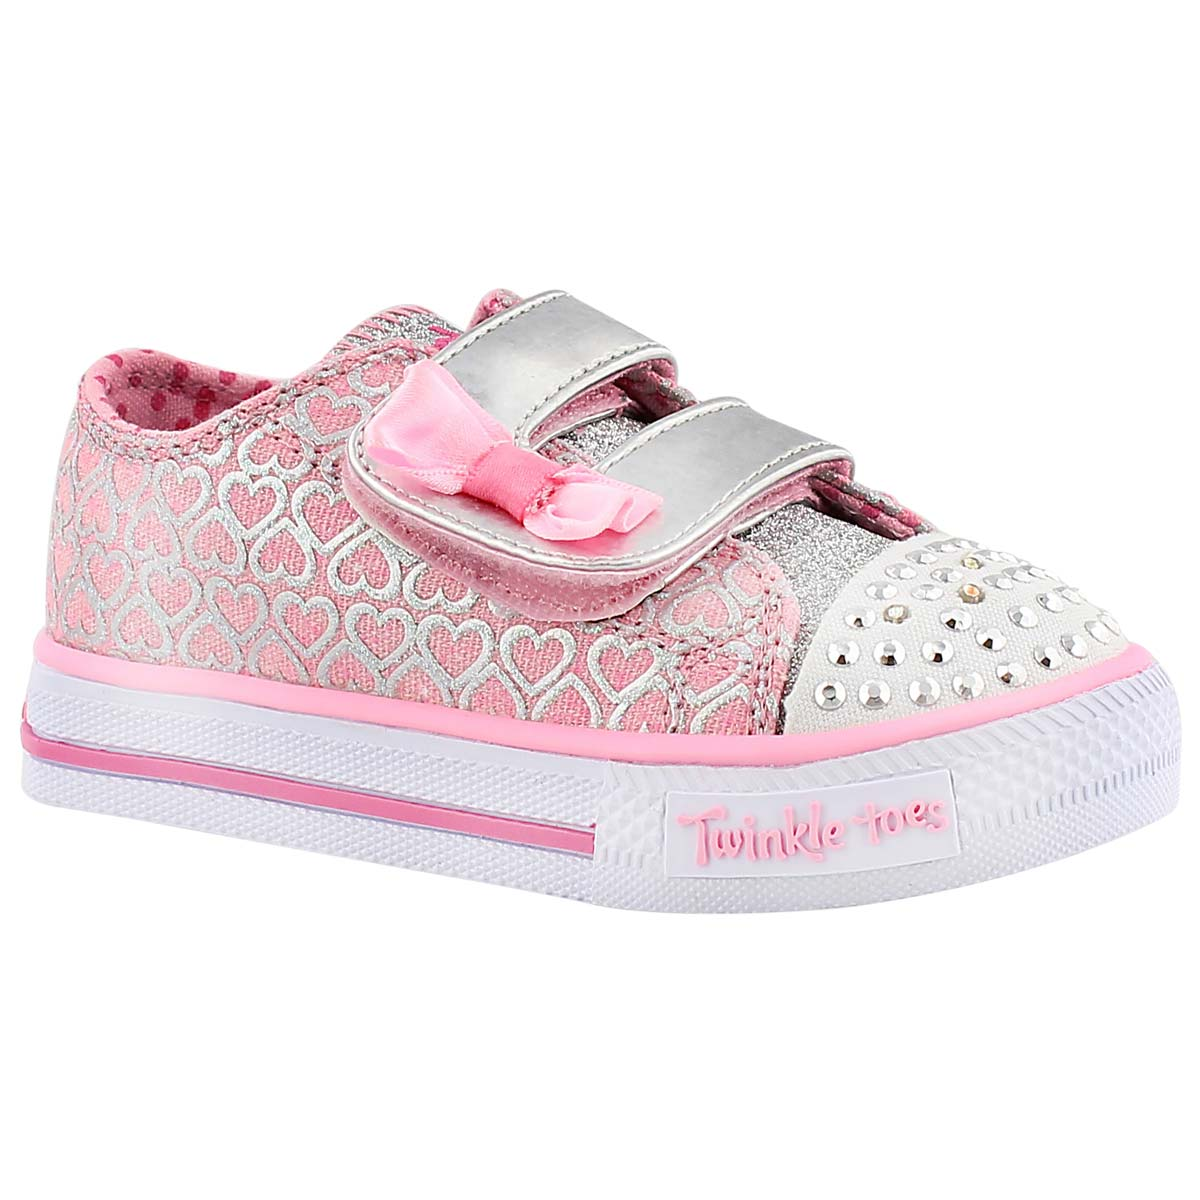 Infants' SHUFFLES pink/silver light up sneakers